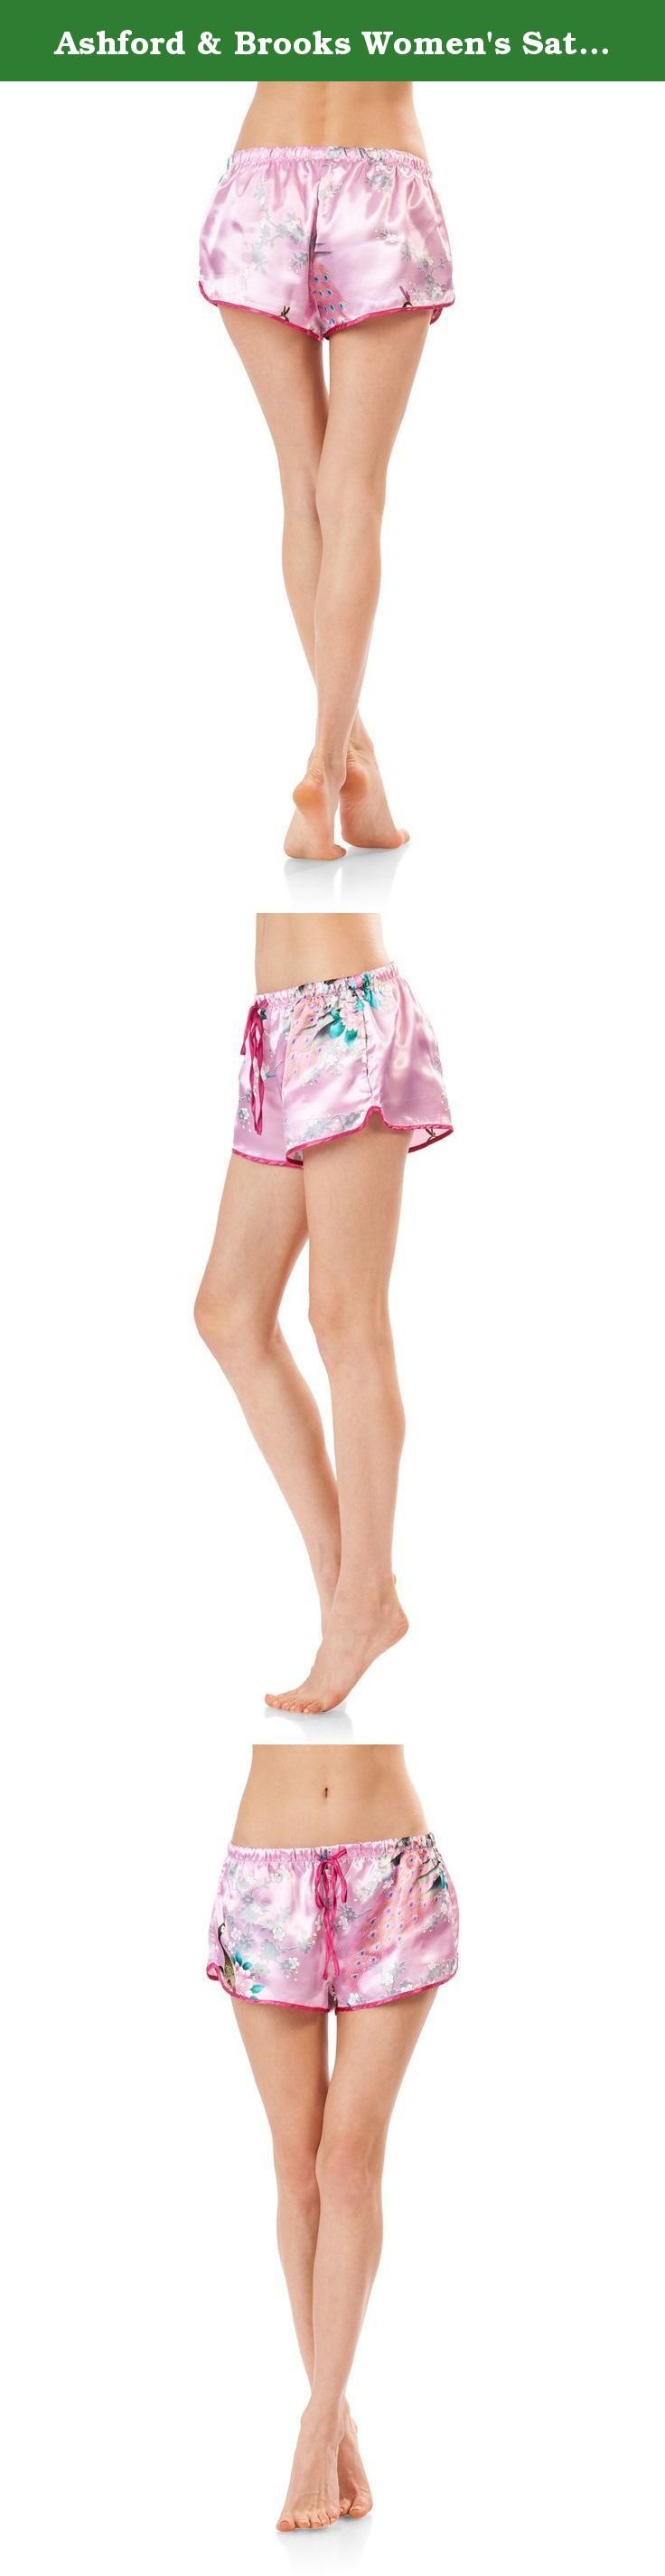 Ashford & Brooks Women's Satin Short Sleeve Pajama Shorts Set - Peacock Blush - Medium. This women's Notch Collar Short Sleeve Pajama Sleep Set from Ashford & Brooks is made out of lightweight silky smooth poly fabric offering a cozy and comfortable yet flattering fit. Short sleeve top features: Notch collar with button down closure, approx. 25.5 from shoulder to hem, chest slip pocket, short sleeves, solid and printed peacock patterns with contrast color piping. Pajama pants with...